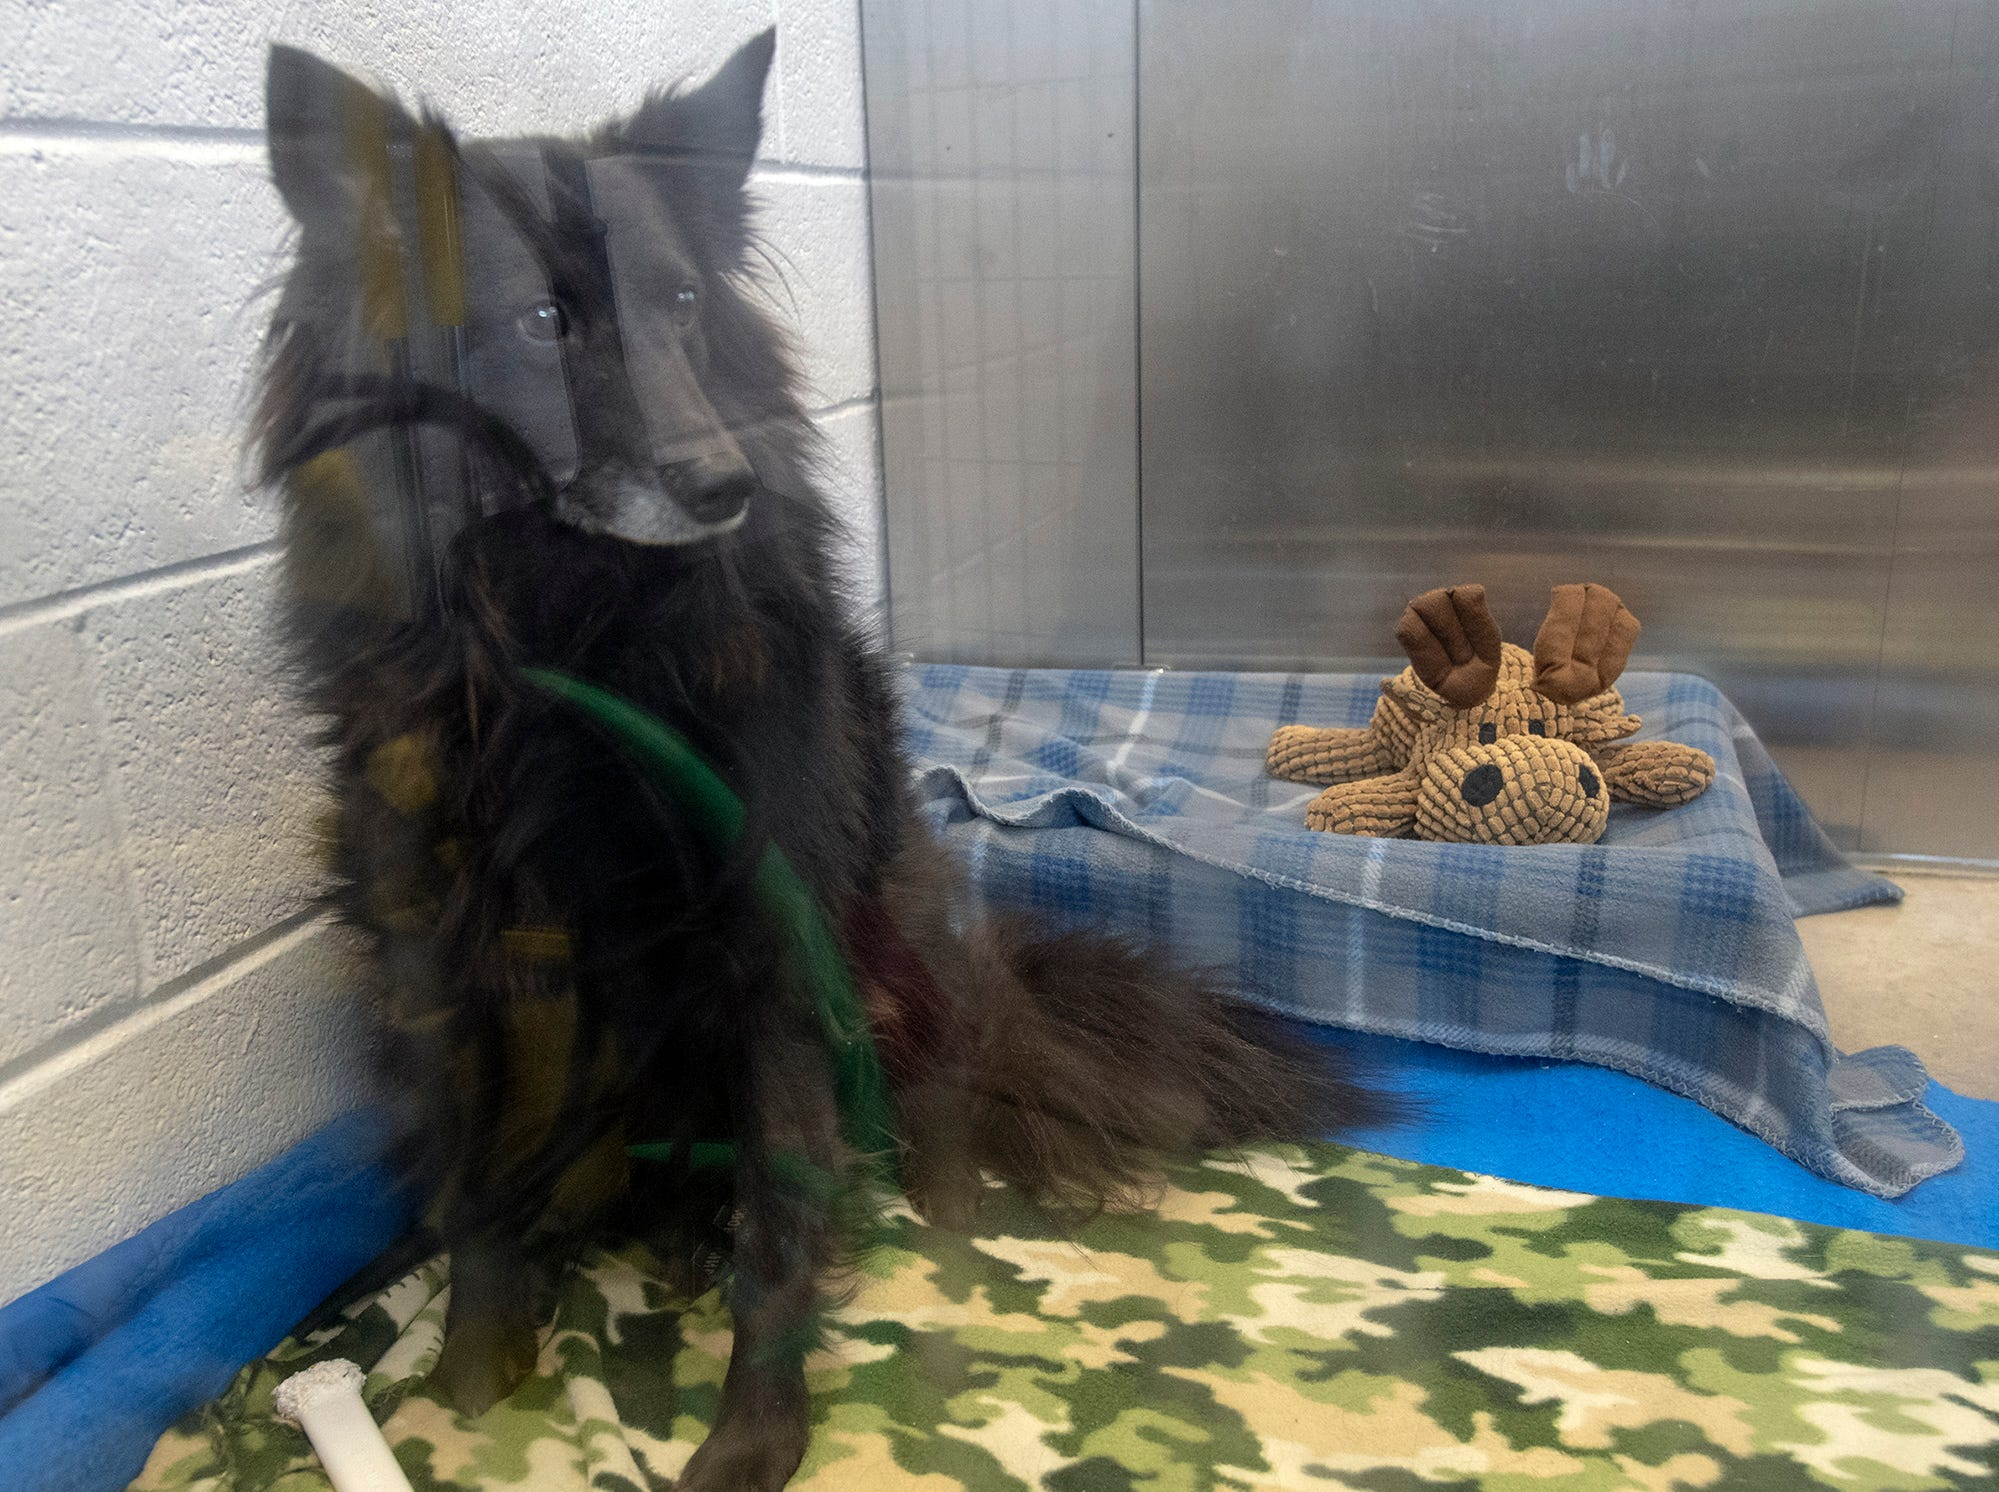 I'm Bass and I'm only 4 years old mixed sheltie. My owner got cancer and is unable to care for me. I have lived with cats but I'm a timid boy and may do best with older children.